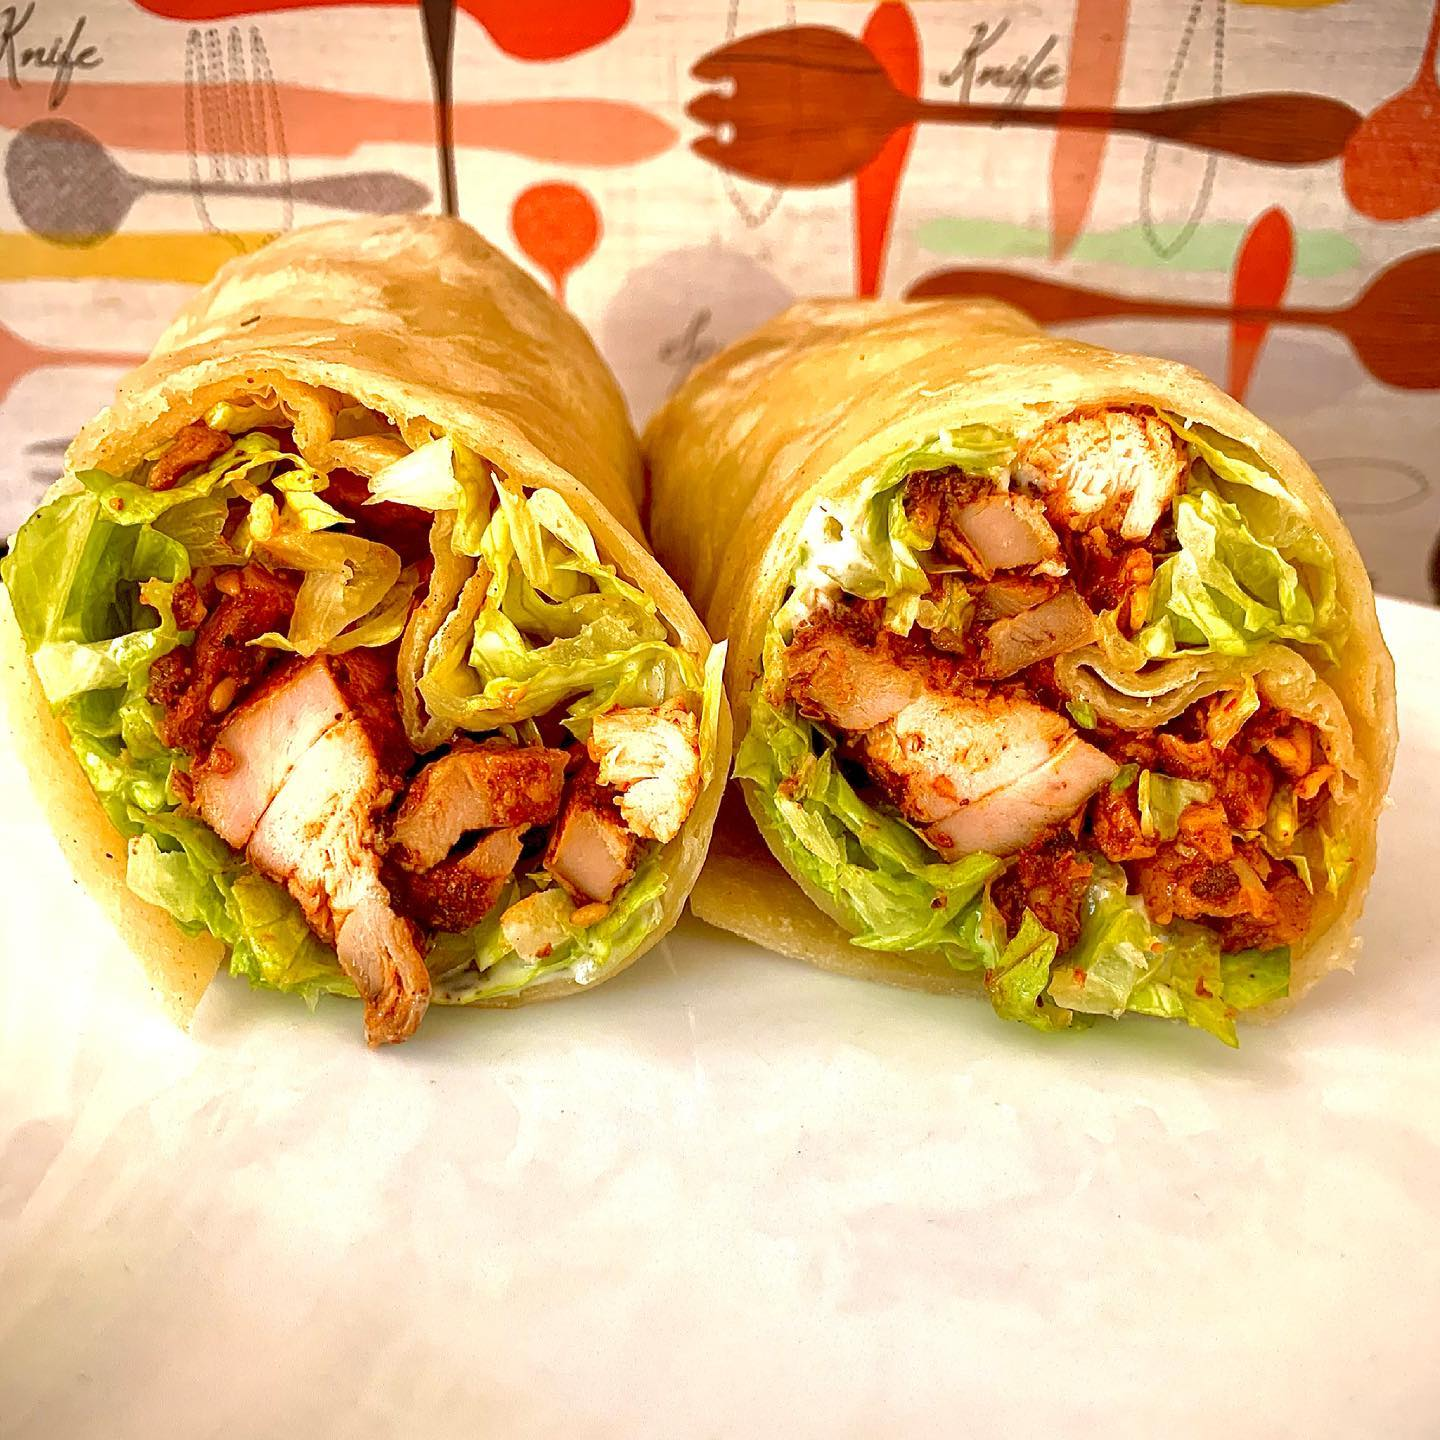 An Al pastor chicken burrito cut in half with lettuce, cheese, and chunks of roasted chicken